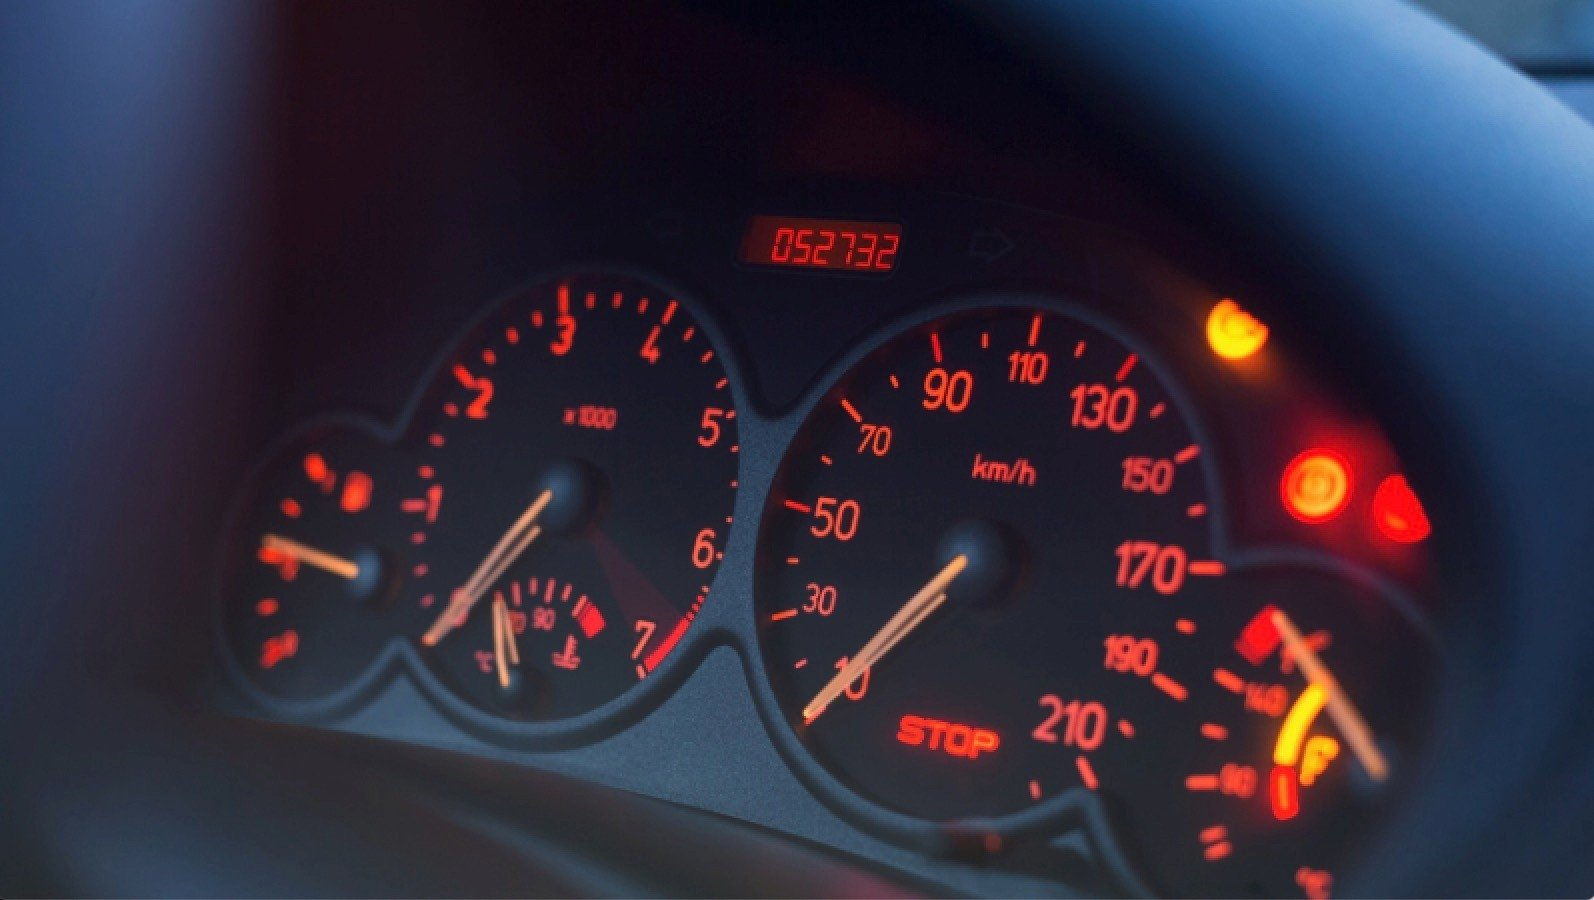 Don't ignore your car warning lights